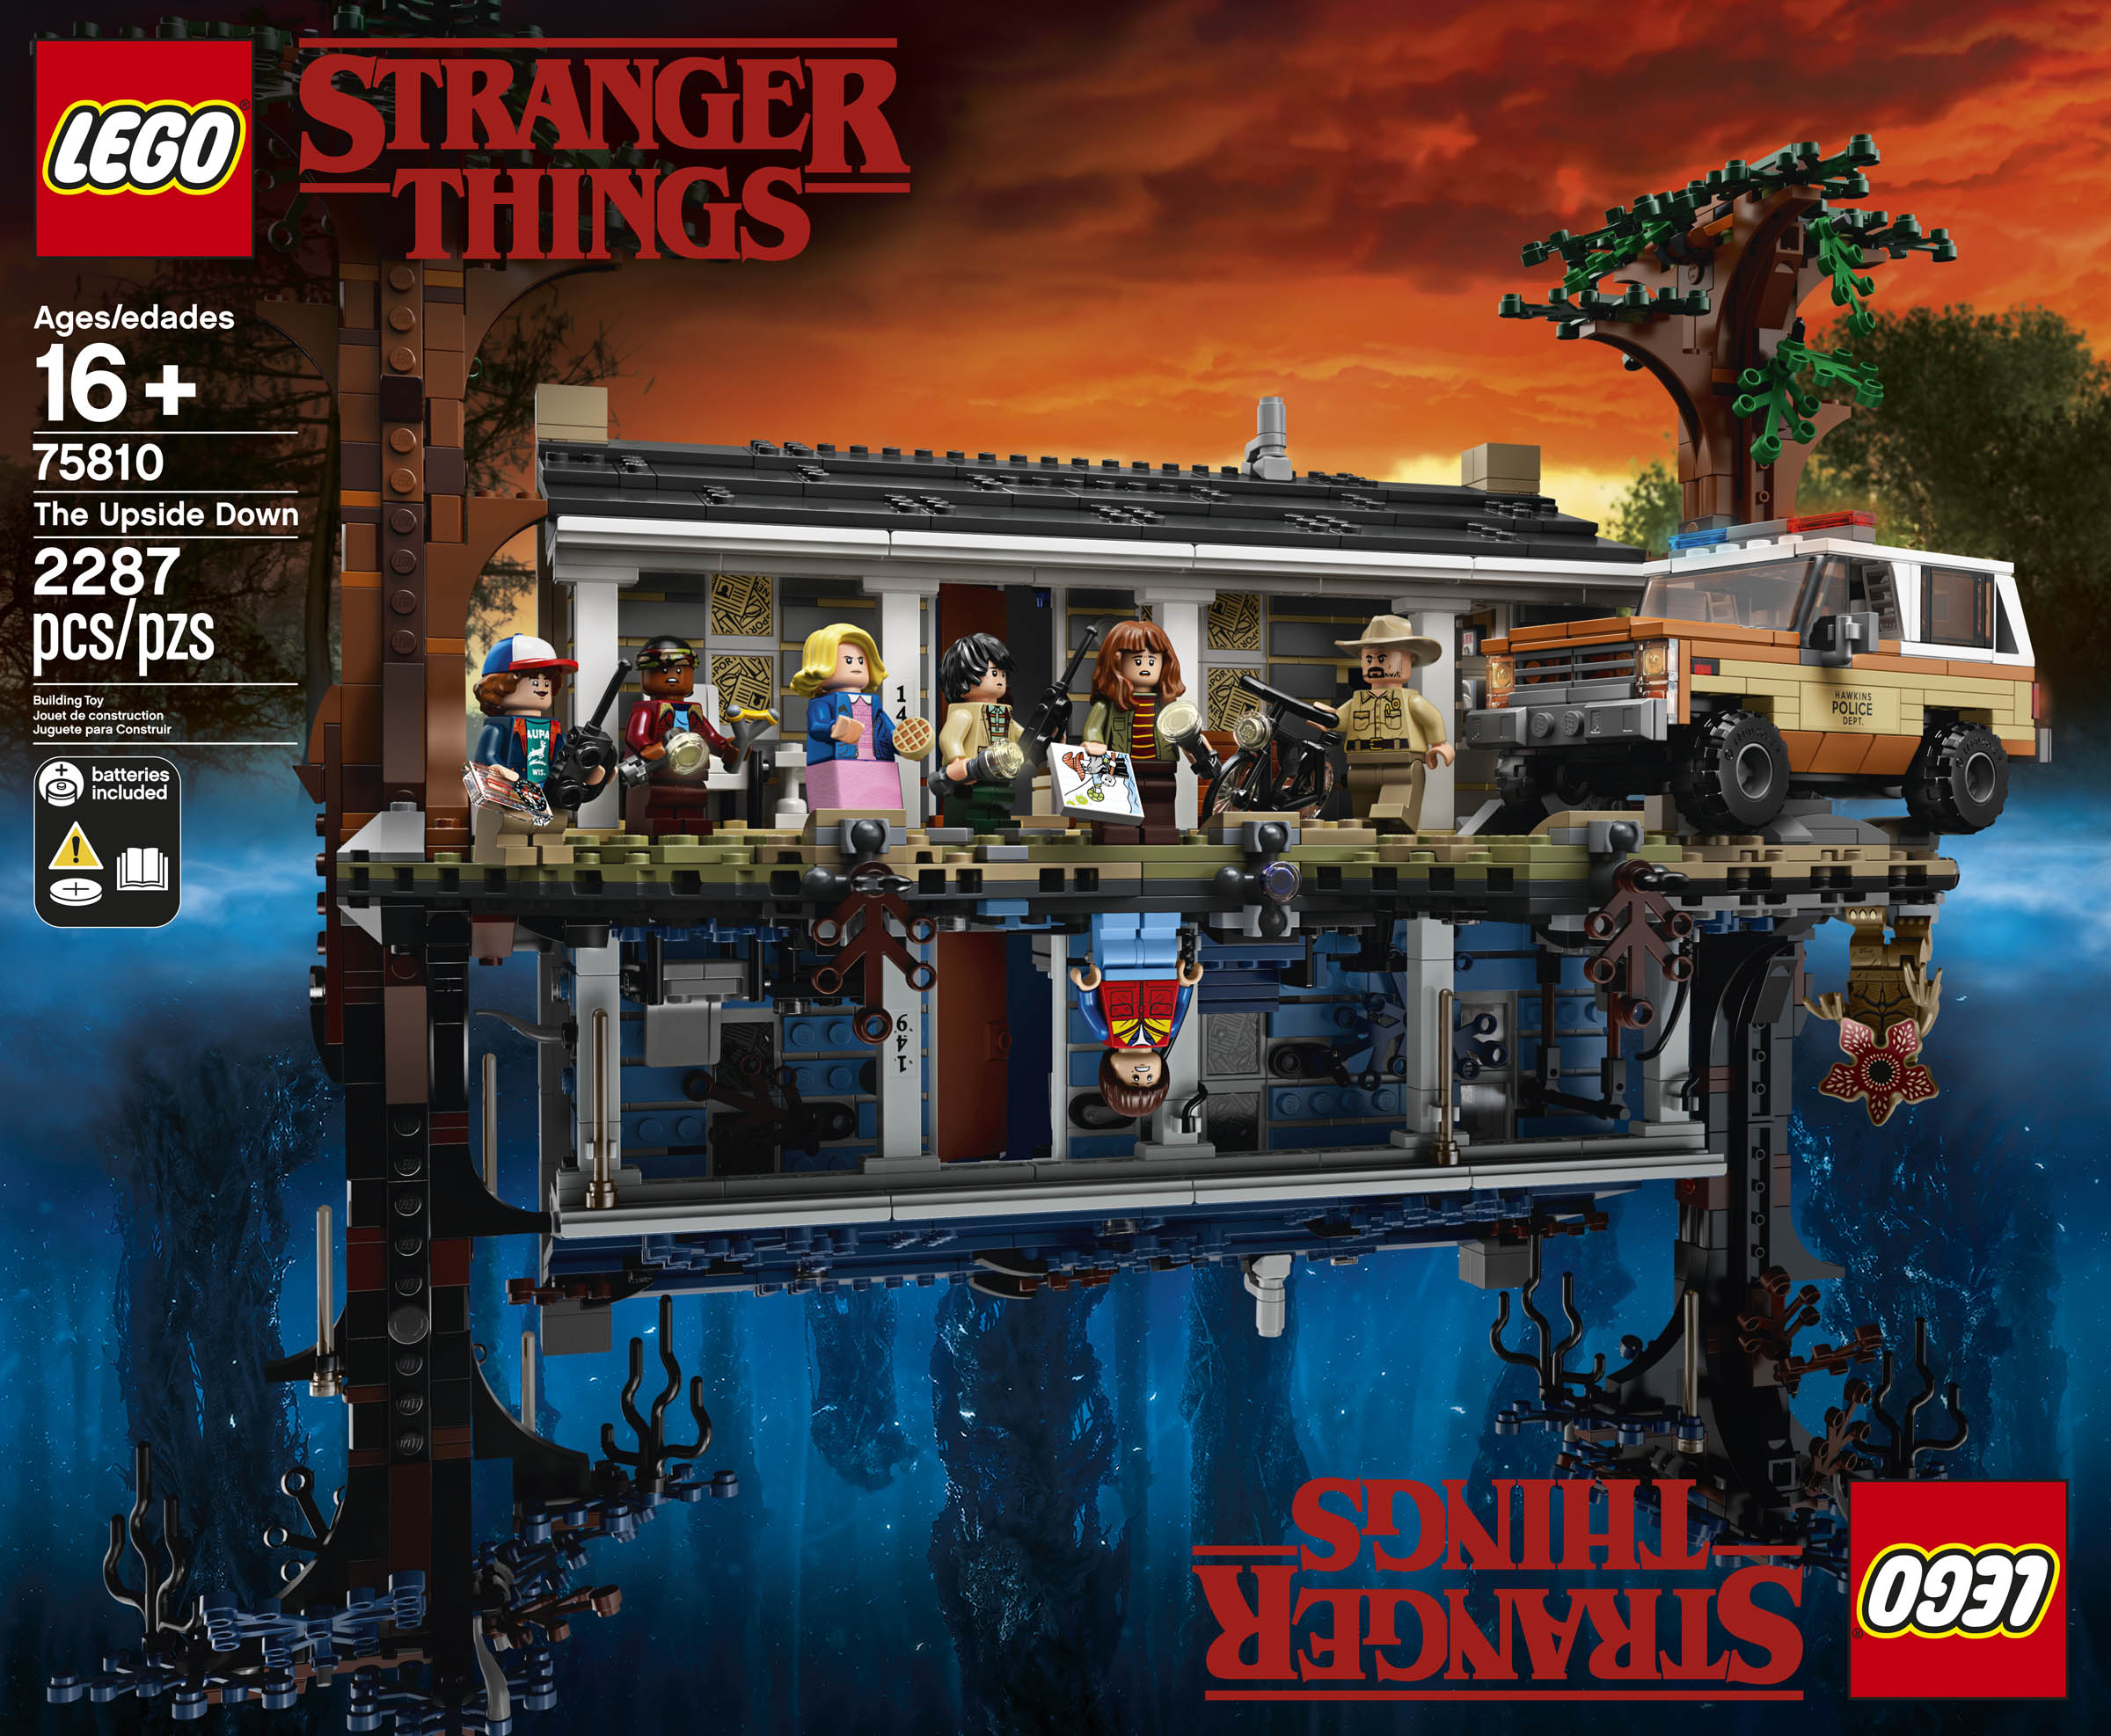 LEGO Officially Reveals Stranger Things Set 75810 The Upside